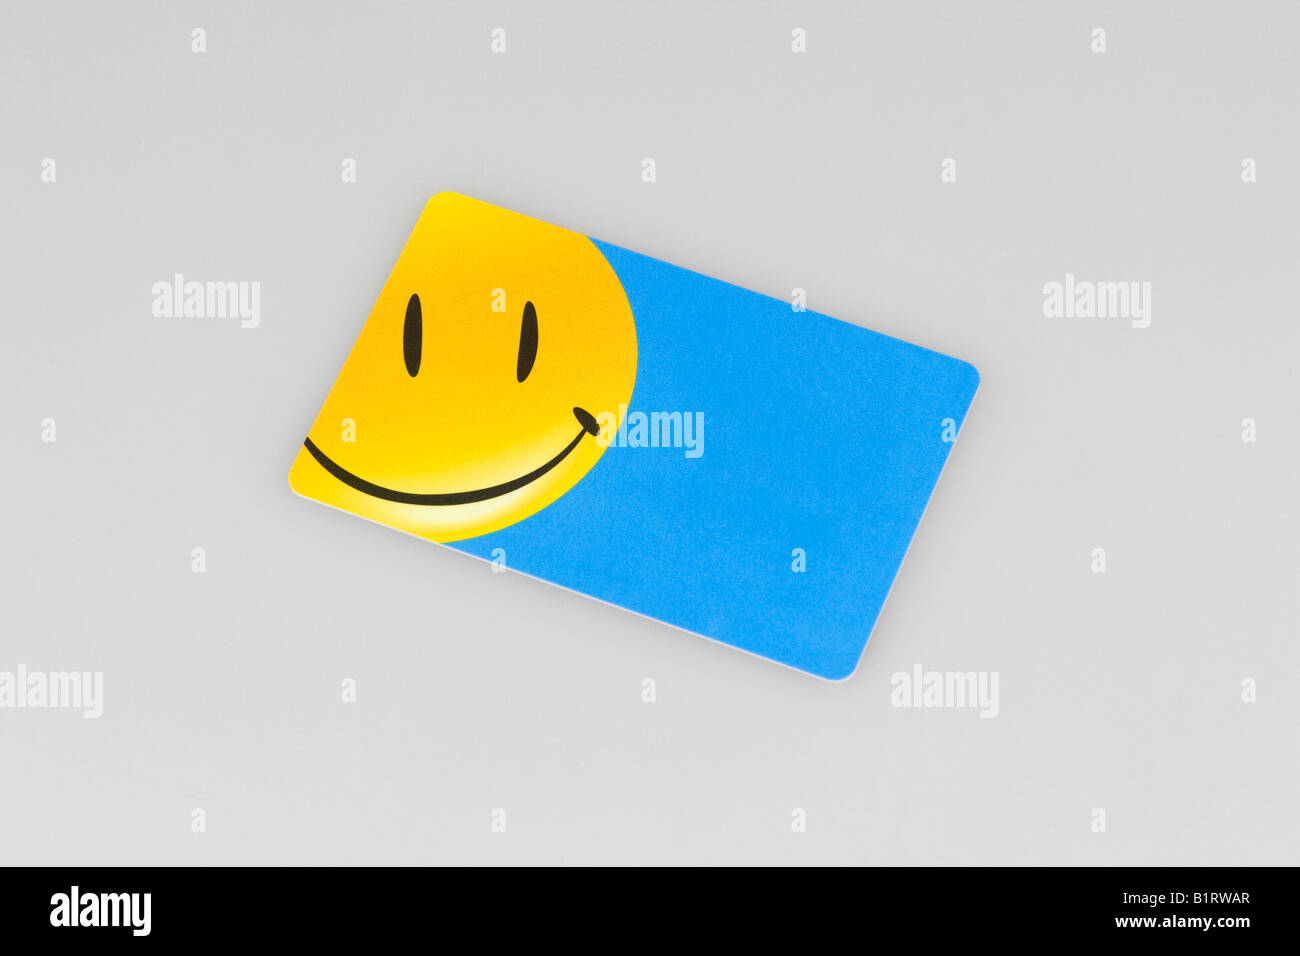 Wal mart gift certificate gift card smiley face stock photo wal mart gift certificate gift card smiley face 1betcityfo Choice Image